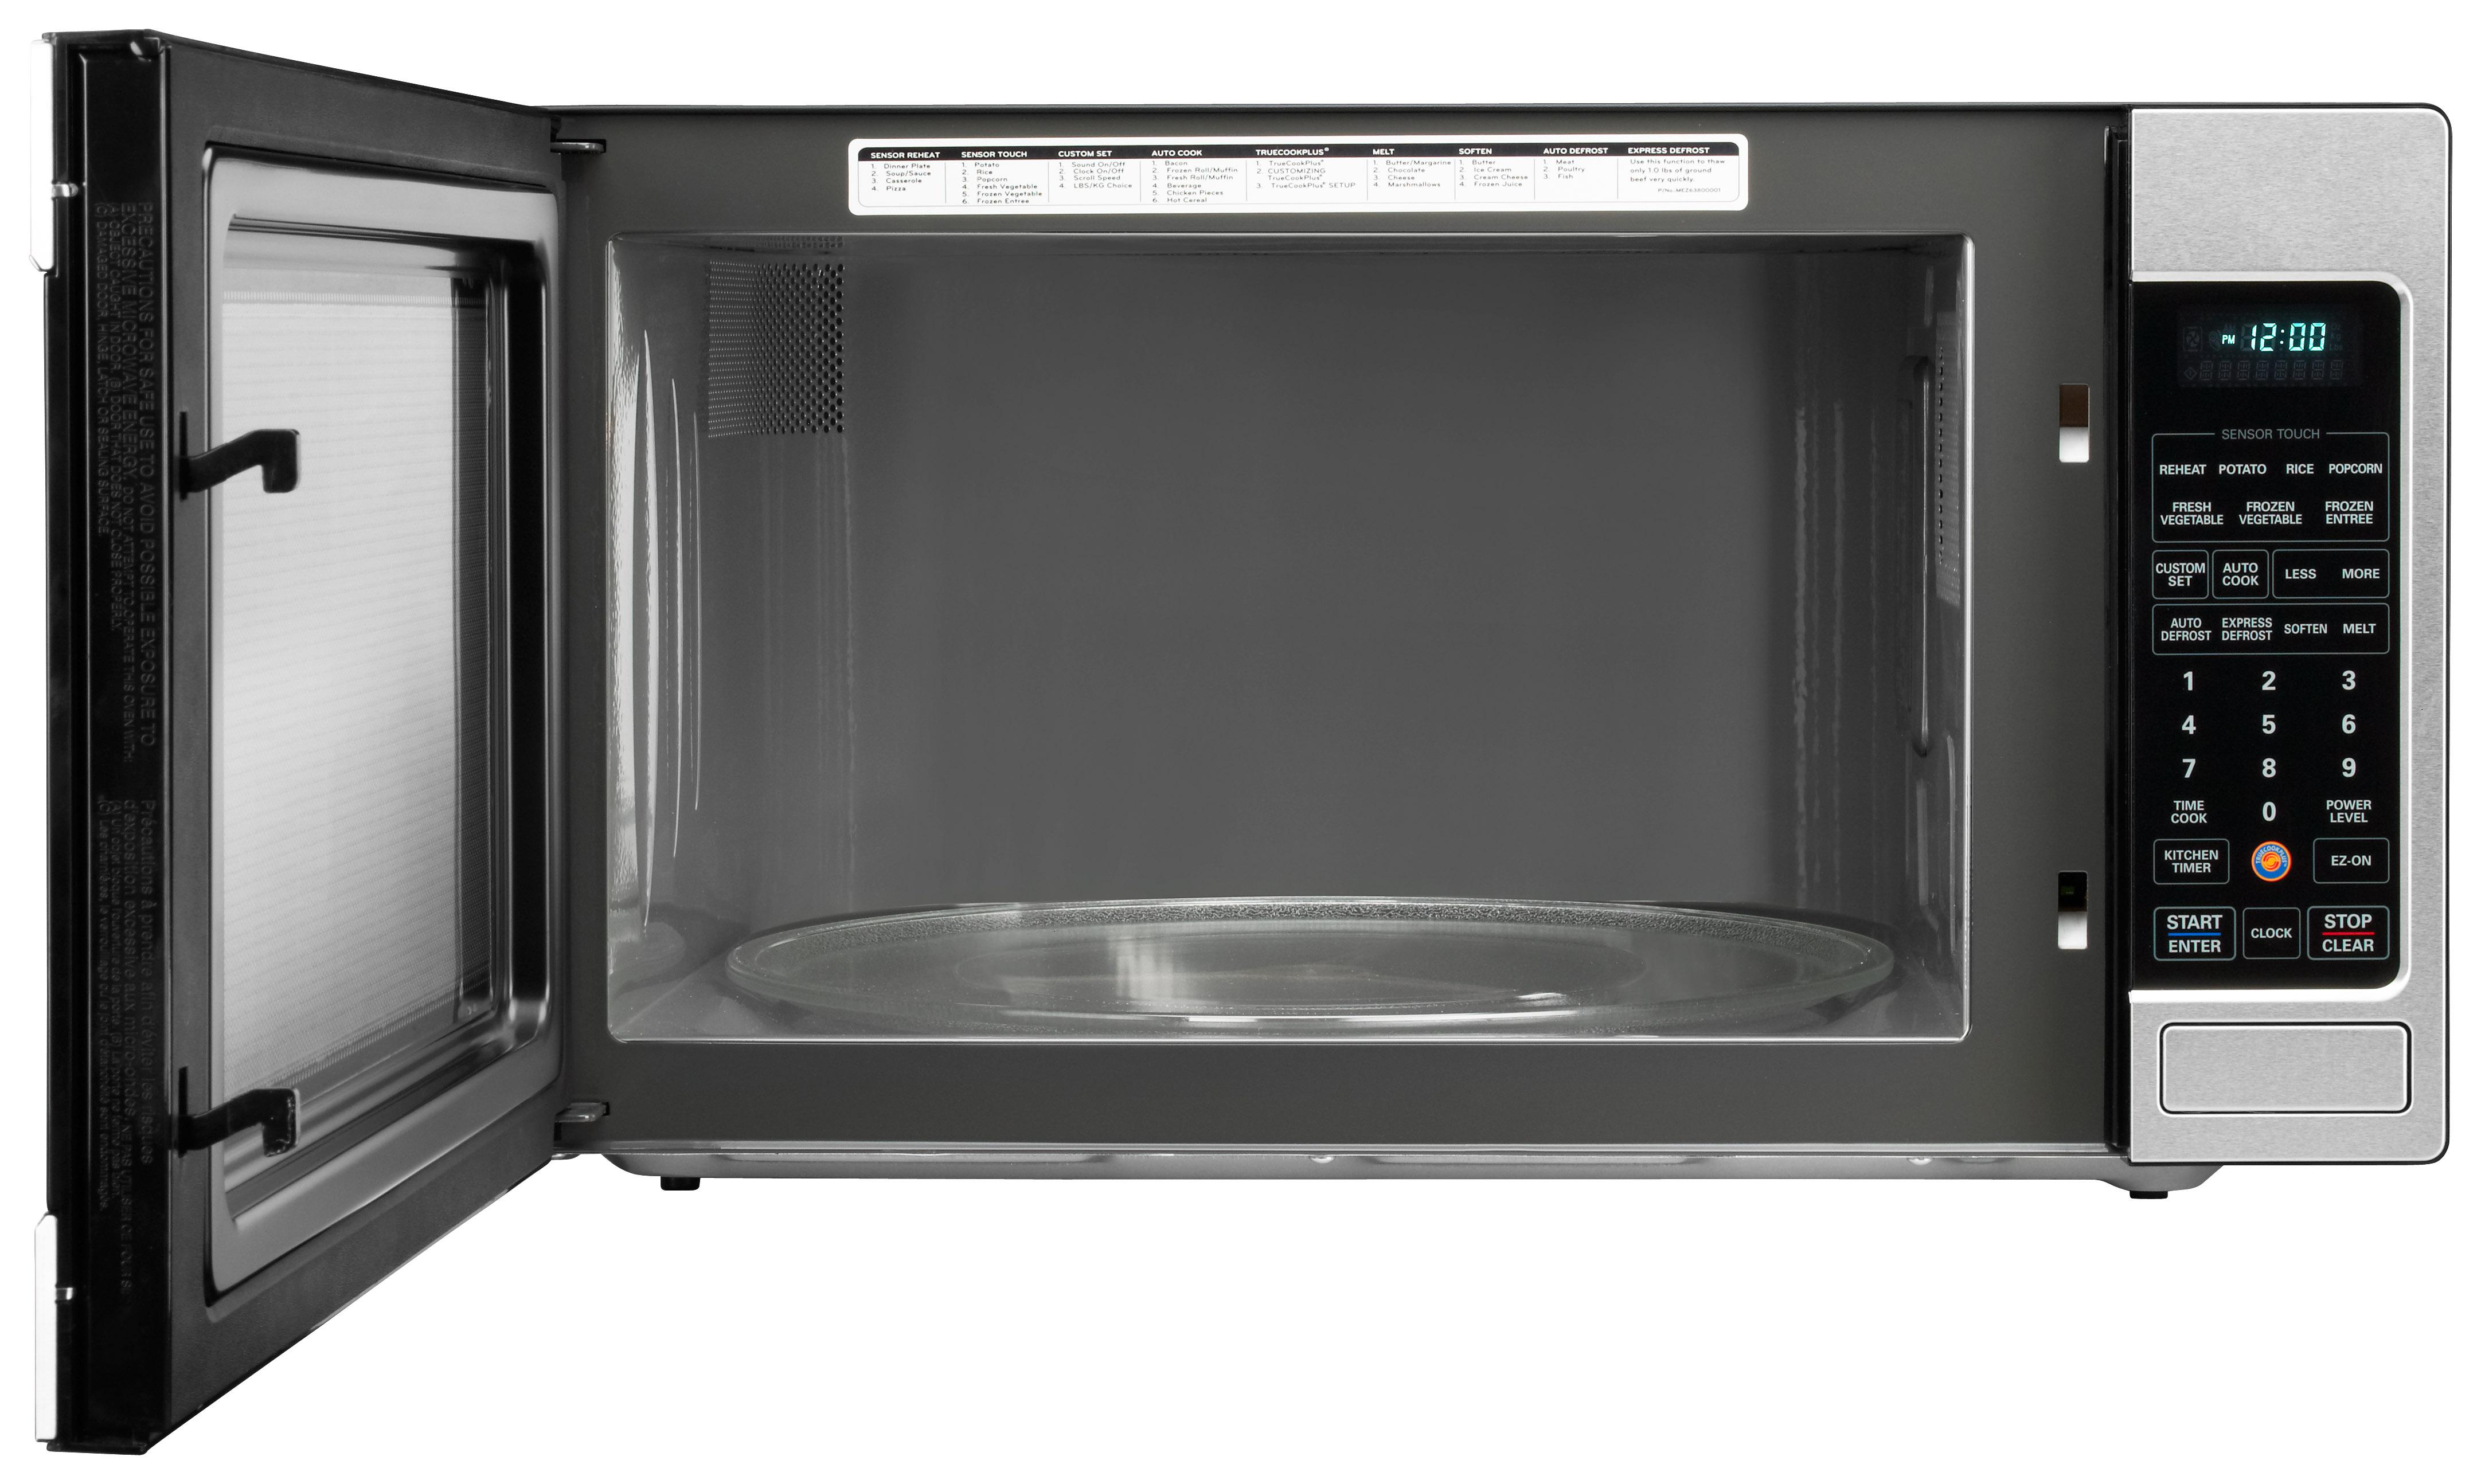 Lg lcrt2010st 2 0 cu ft counter top microwave for Oven cleaner on kitchen countertops